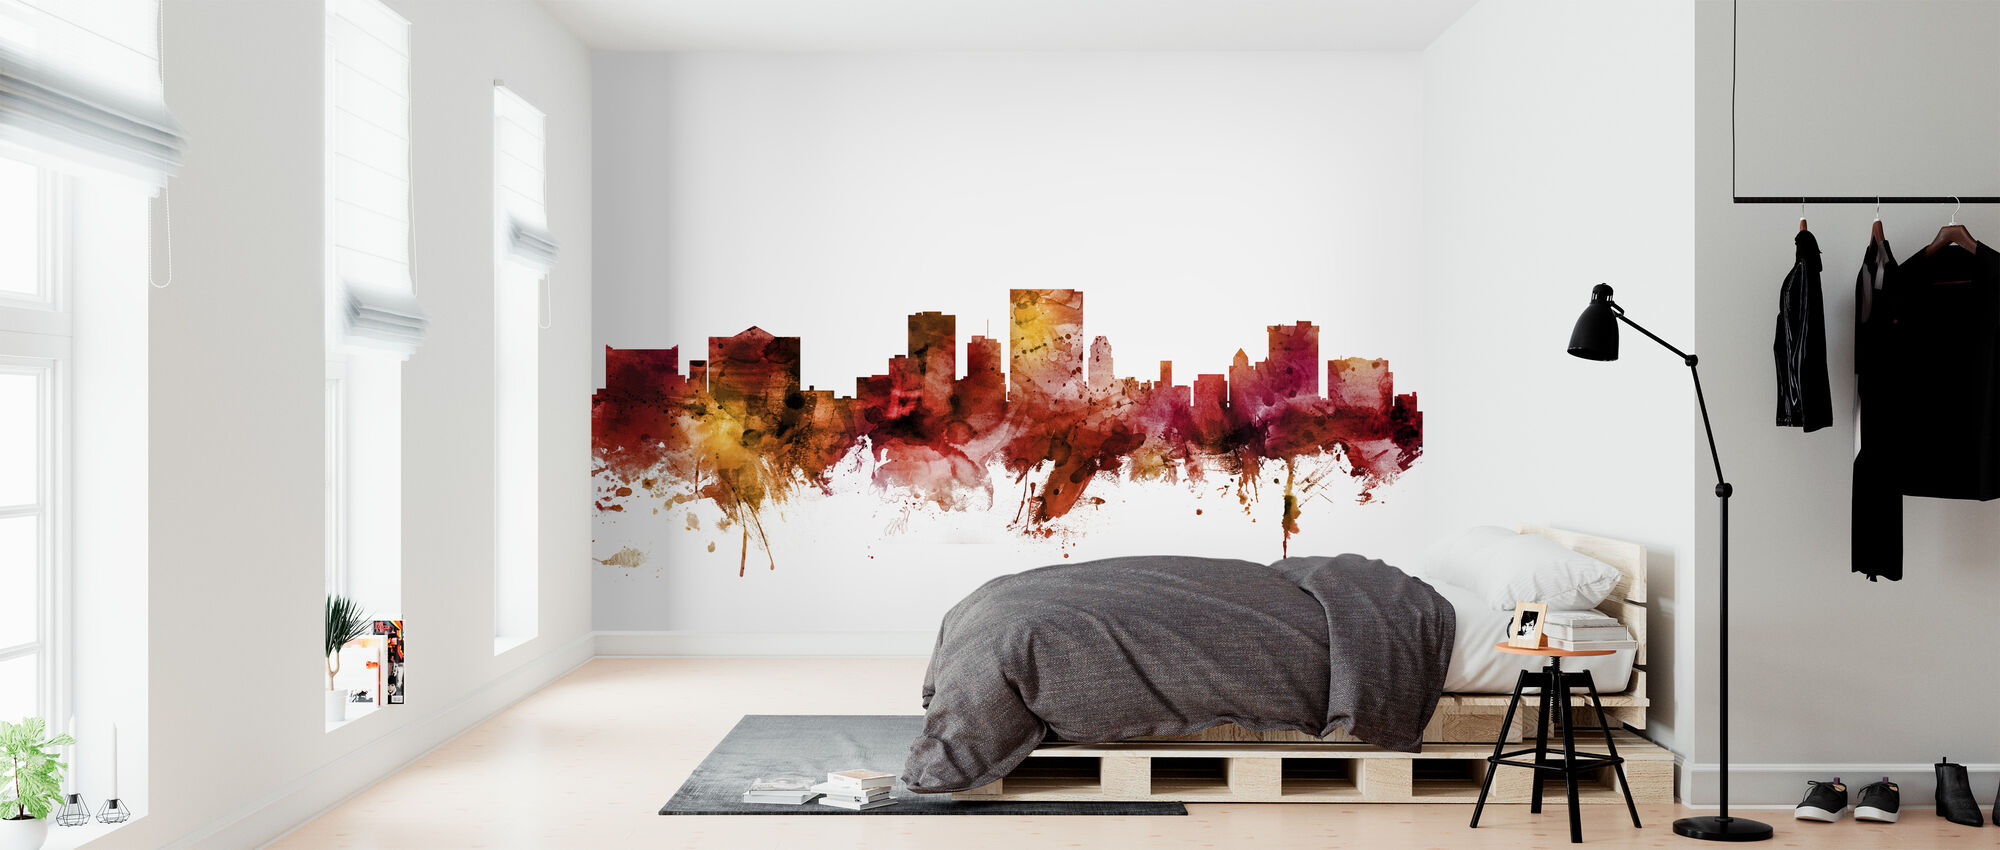 El Paso Texas Skyline - Wallpaper - Bedroom